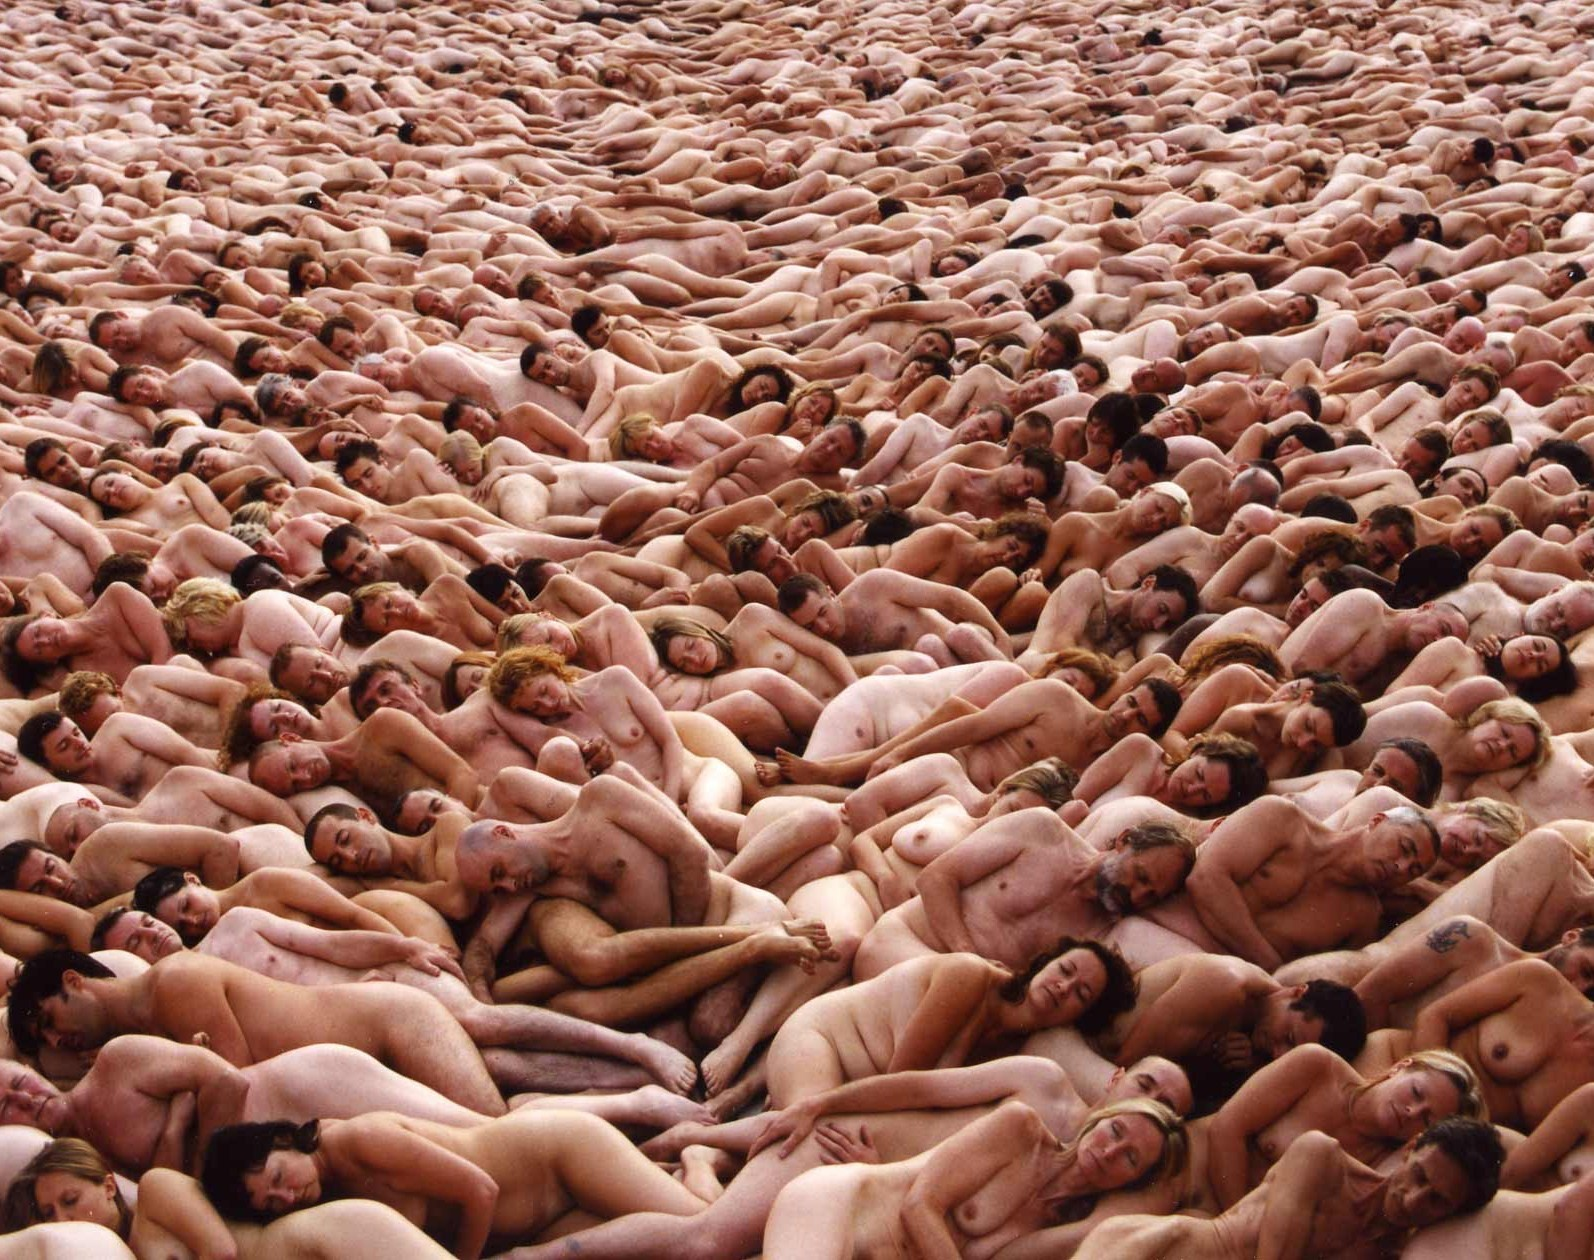 20091106185512-spencer-tunick.jpg